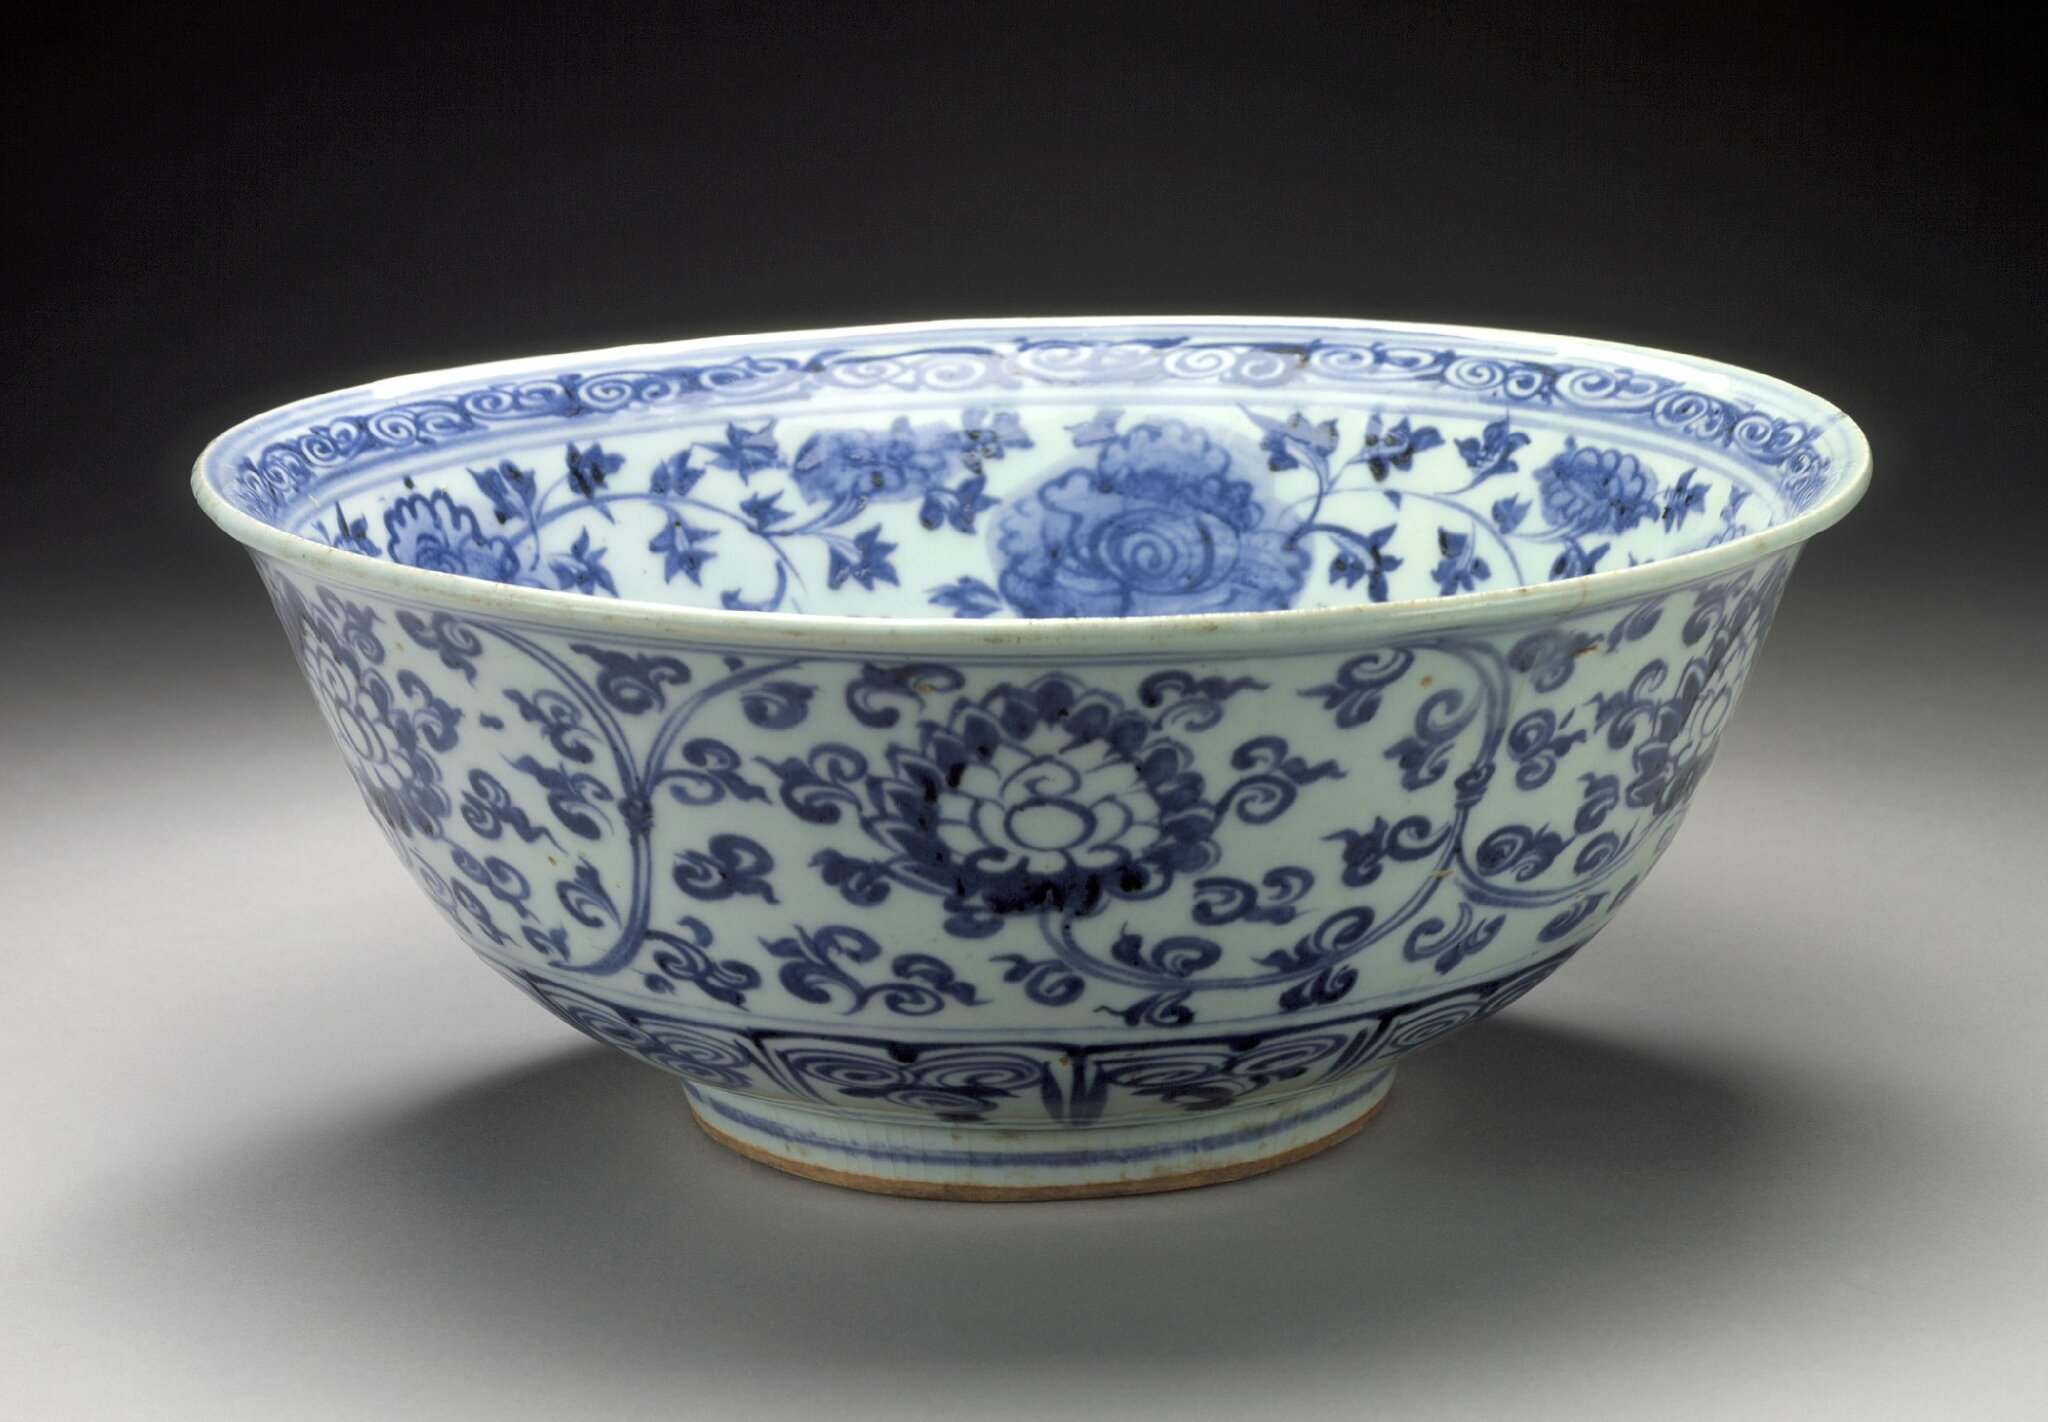 Large Bowl (Wan) with Lotuses and Floral Scrolls, middle Ming dynasty, about 1450-1550